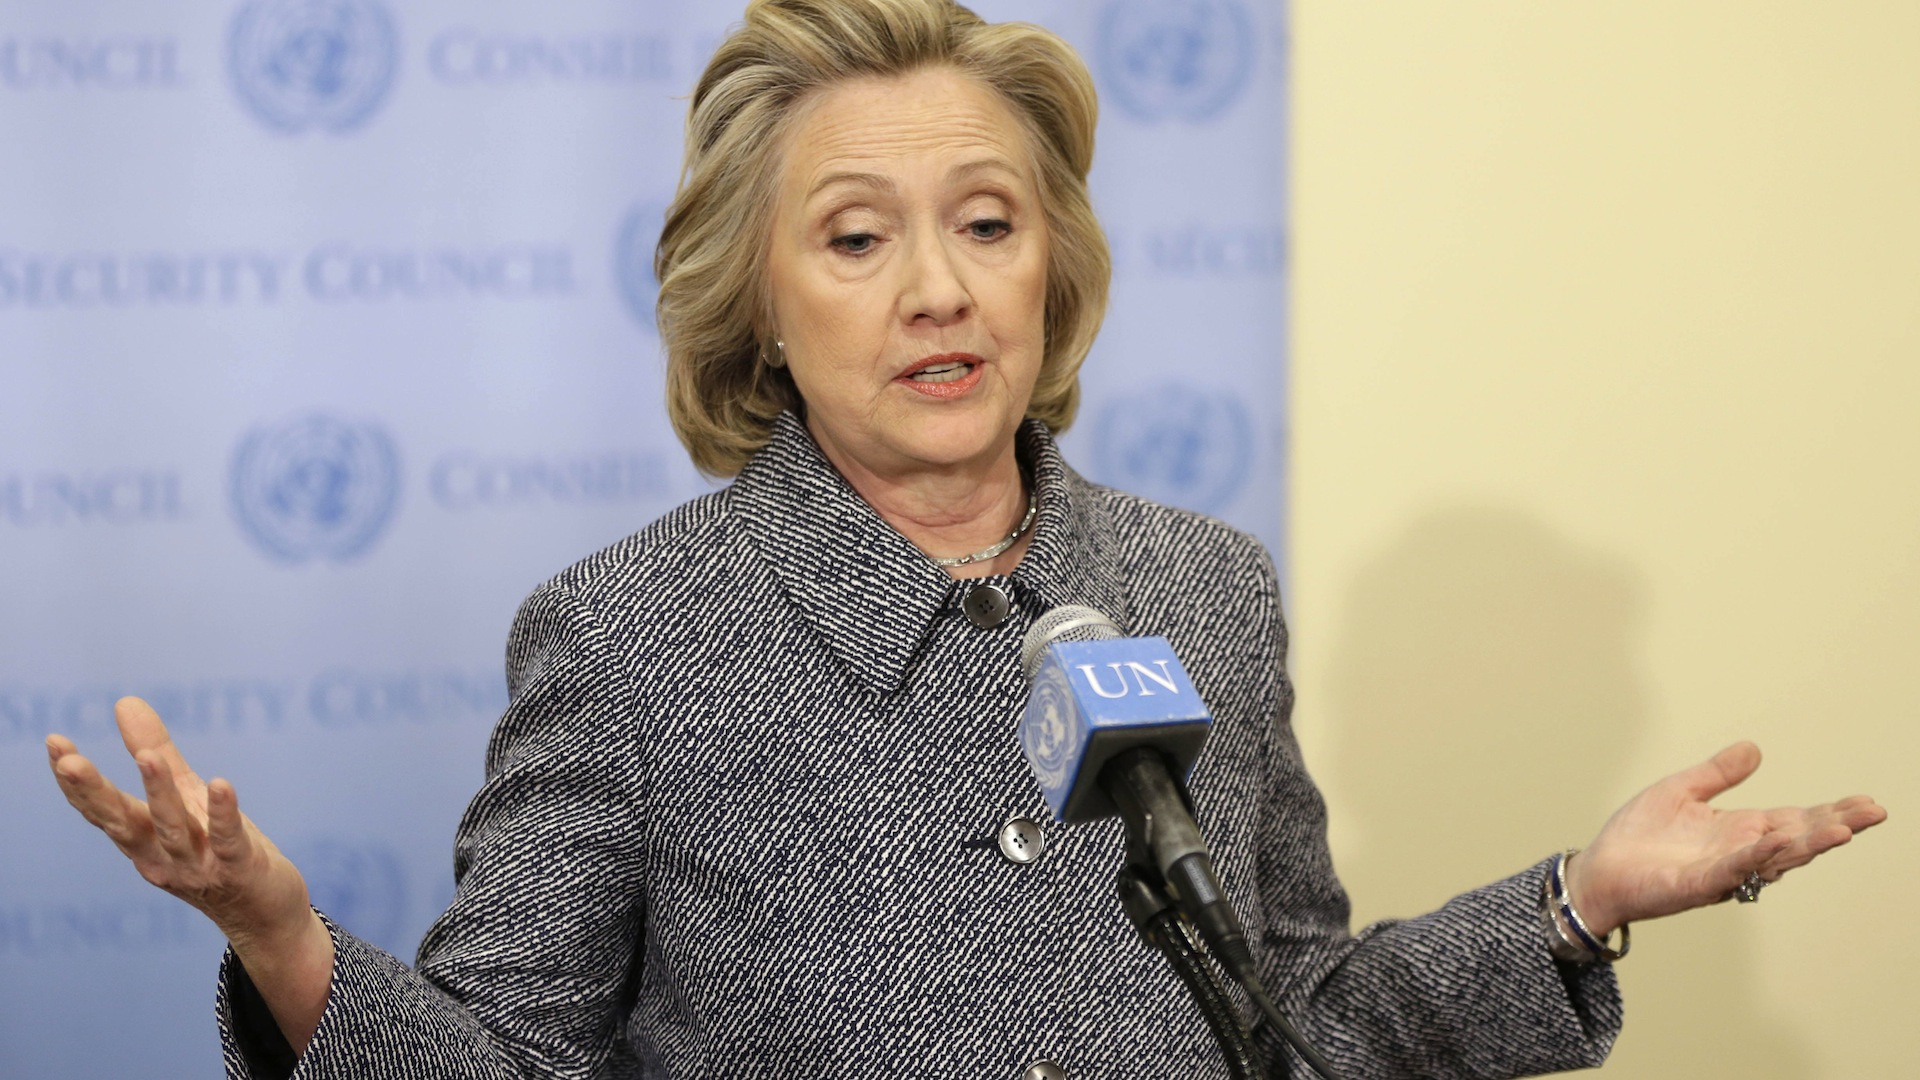 Clinton's team went from nonchalant to nervous over e-mail controversy